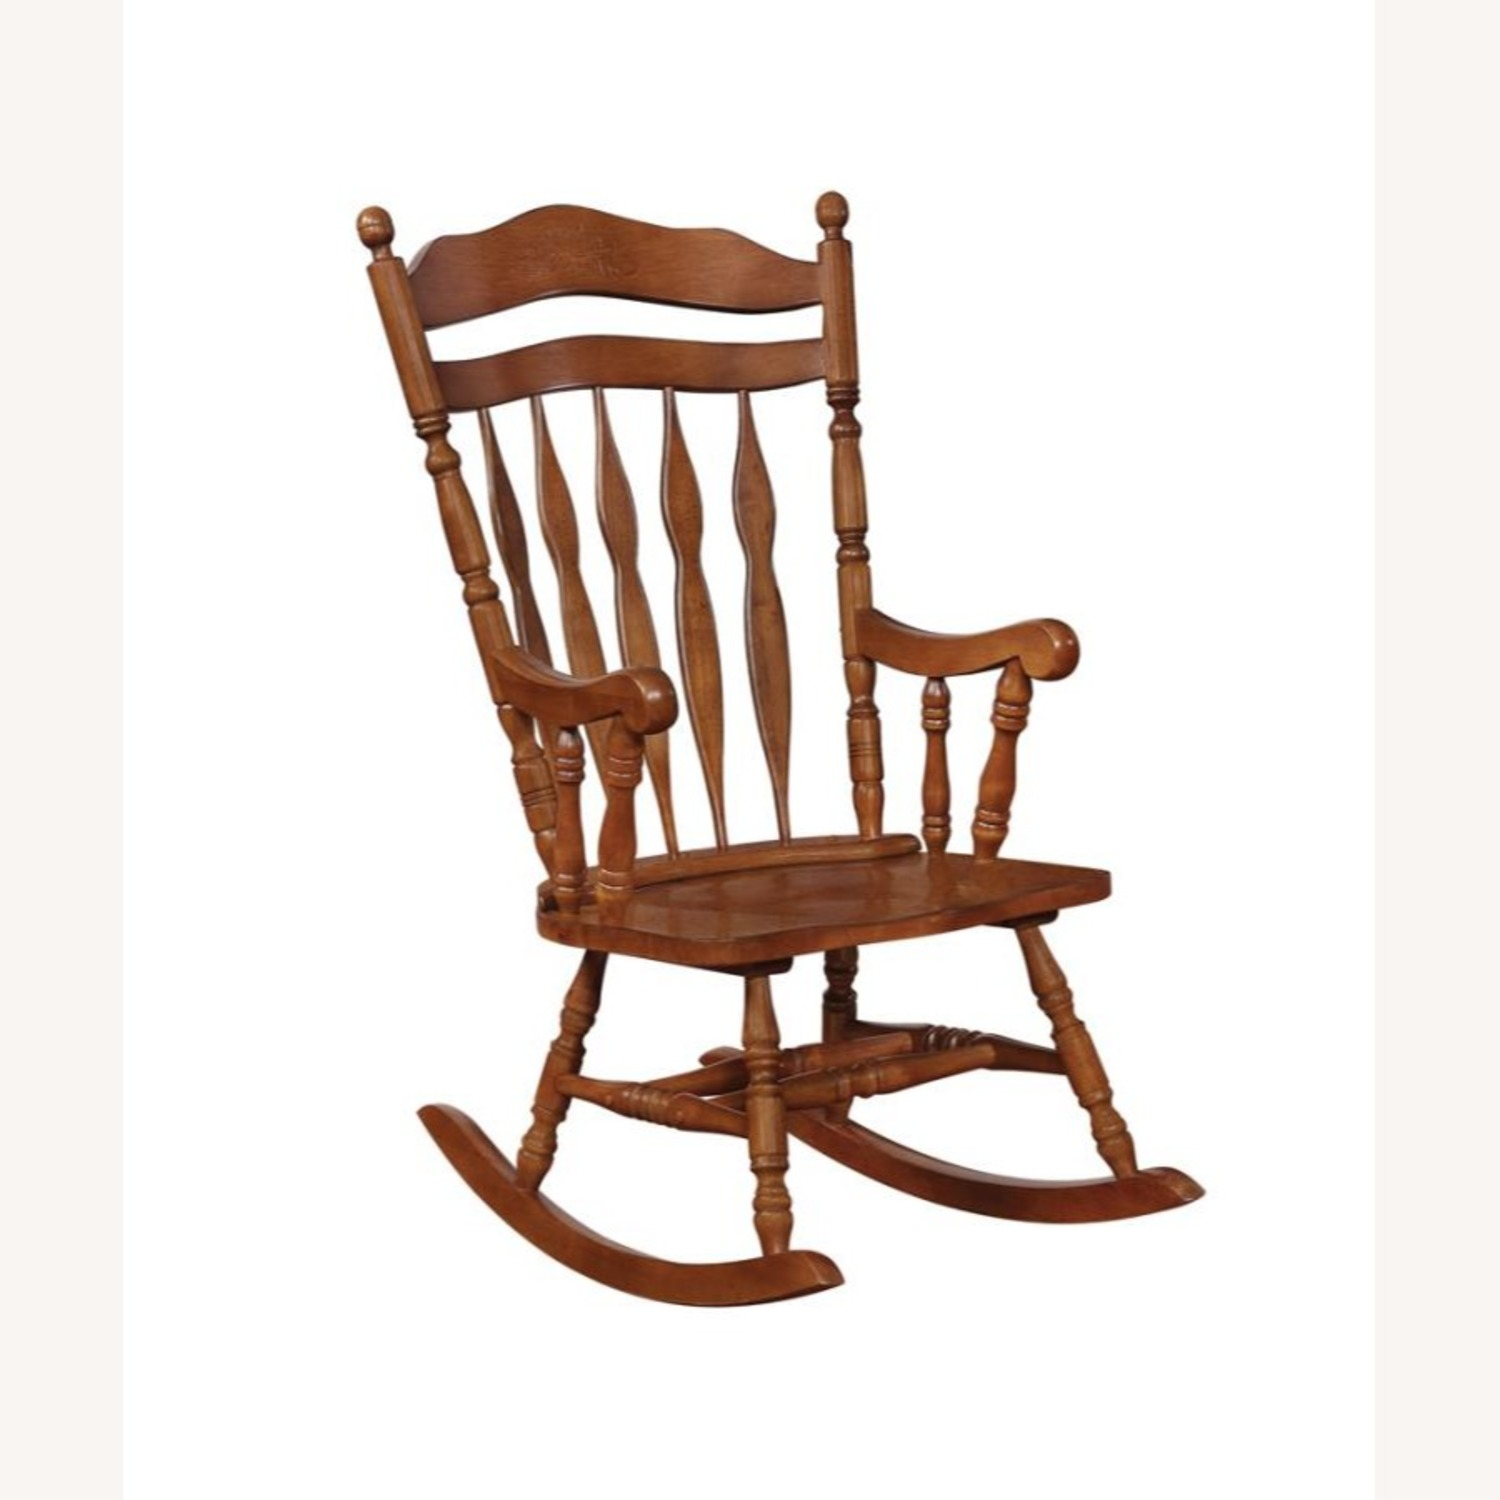 Windor Style Rocking Chair In Medium Brown Finish - image-0